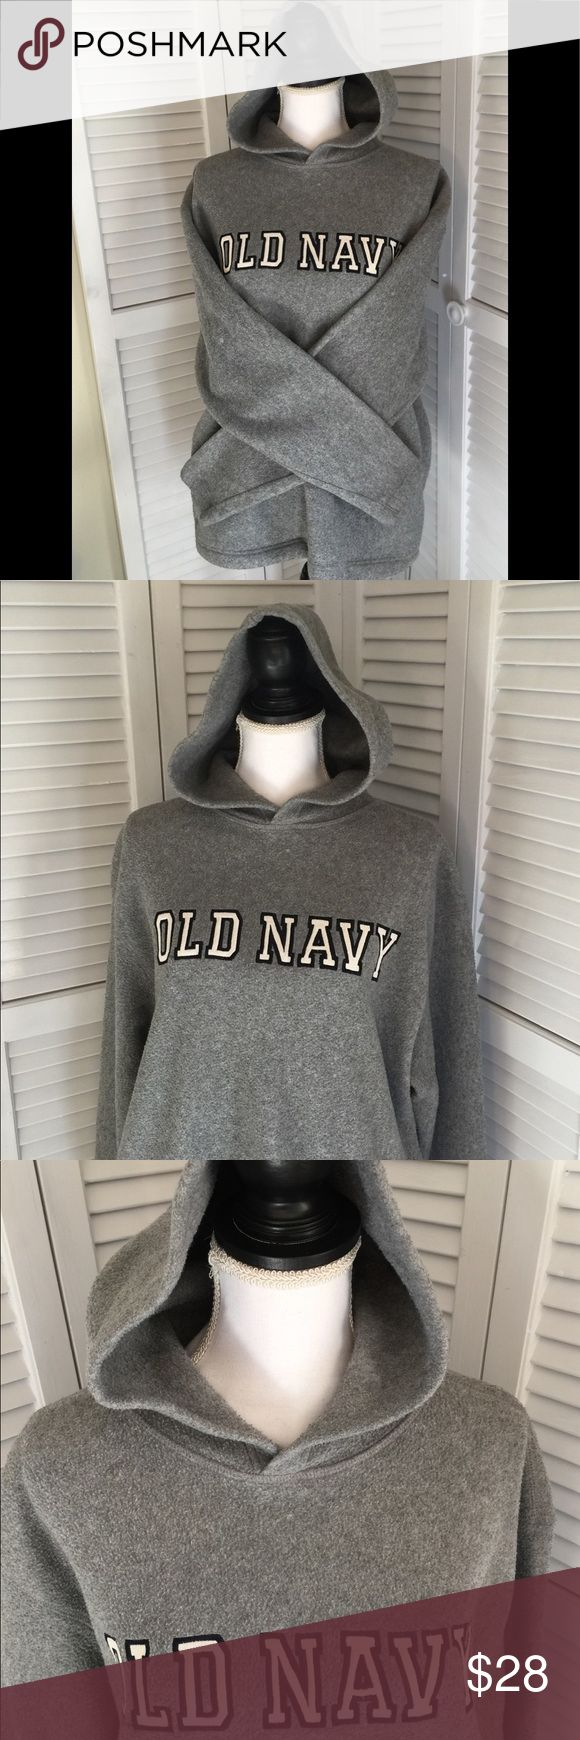 "Old Navy Pullover Hoodie Drawstring bottom Old Navy Pullover Hoodie Drawstring bottom Excellent Used Condition. 22"" pit to pit. Worn a handful of times. Too warm for North Carolina climate. Lost in the recesses of my guest bedroom closet, rediscovered when I started Poshing. 😉 Old Navy Jackets & Coats"